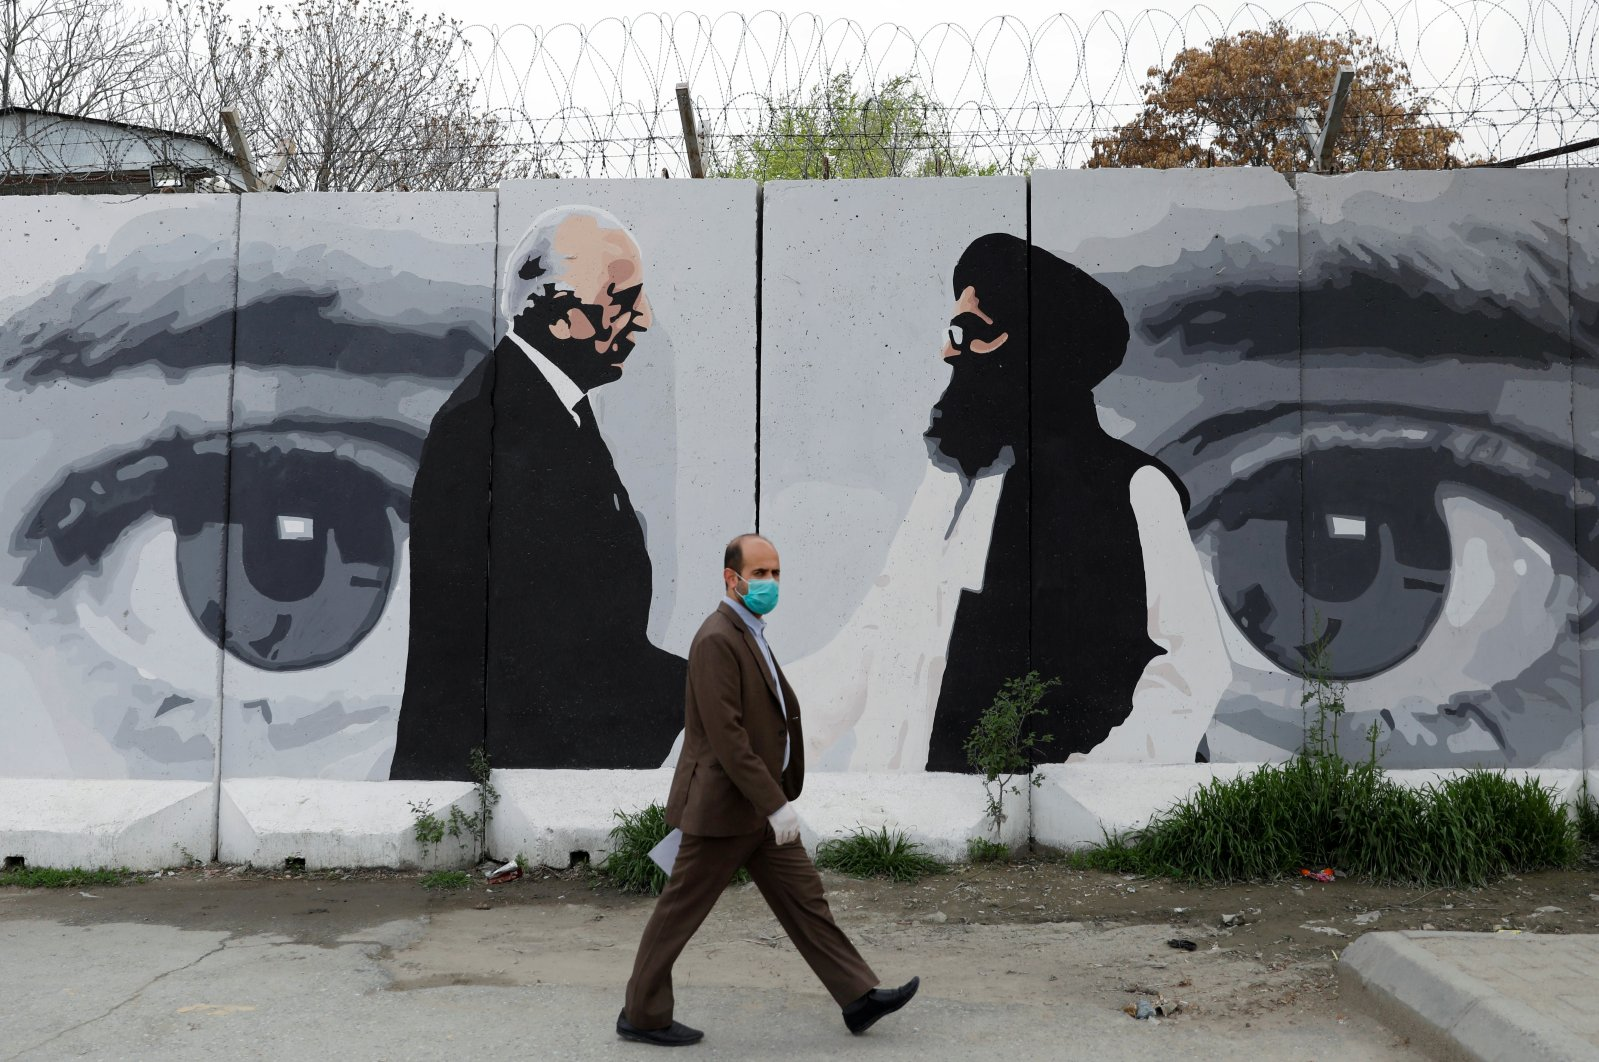 An Afghan man wearing a protective face mask walks past a wall painted with a photo of Zalmay Khalilzad, the U.S. envoy for peace in Afghanistan, and Mullah Abdul Ghani Baradar, the leader of the Taliban delegation, Kabul, April 13, 2020. (REUTERS Photo)